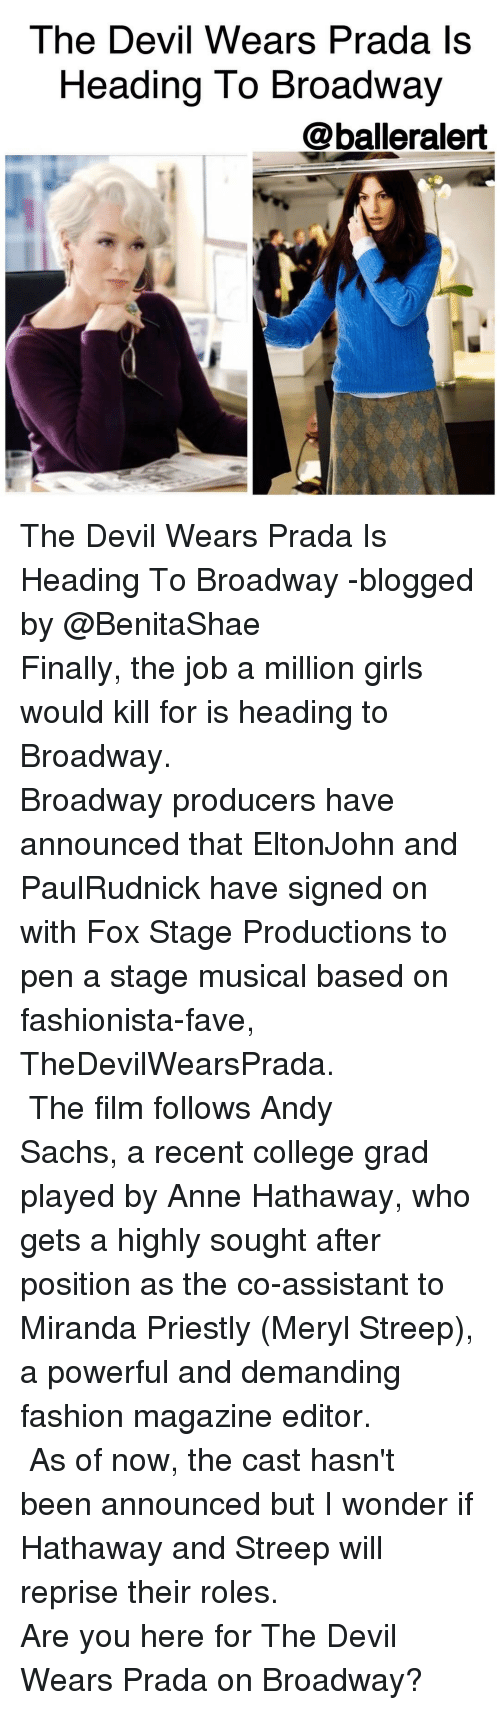 Memes, Anne Hathaway, and Meryl Streep: The Devil Wears Prada is  Heading To Broadway  balleralert The Devil Wears Prada Is Heading To Broadway -blogged by @BenitaShae ⠀⠀⠀⠀⠀⠀⠀⠀⠀ ⠀⠀⠀⠀⠀⠀⠀⠀⠀ Finally, the job a million girls would kill for is heading to Broadway. ⠀⠀⠀⠀⠀⠀⠀⠀⠀ ⠀⠀⠀⠀⠀⠀⠀⠀⠀ Broadway producers have announced that EltonJohn and PaulRudnick have signed on with Fox Stage Productions to pen a stage musical based on fashionista-fave, TheDevilWearsPrada. ⠀⠀⠀⠀⠀⠀⠀⠀⠀ ⠀⠀⠀⠀⠀⠀⠀⠀⠀ The film follows Andy Sachs, a recent college grad played by Anne Hathaway, who gets a highly sought after position as the co-assistant to Miranda Priestly (Meryl Streep), a powerful and demanding fashion magazine editor. ⠀⠀⠀⠀⠀⠀⠀⠀⠀ ⠀⠀⠀⠀⠀⠀⠀⠀⠀ As of now, the cast hasn't been announced but I wonder if Hathaway and Streep will reprise their roles. ⠀⠀⠀⠀⠀⠀⠀⠀⠀ ⠀⠀⠀⠀⠀⠀⠀⠀⠀ Are you here for The Devil Wears Prada on Broadway?